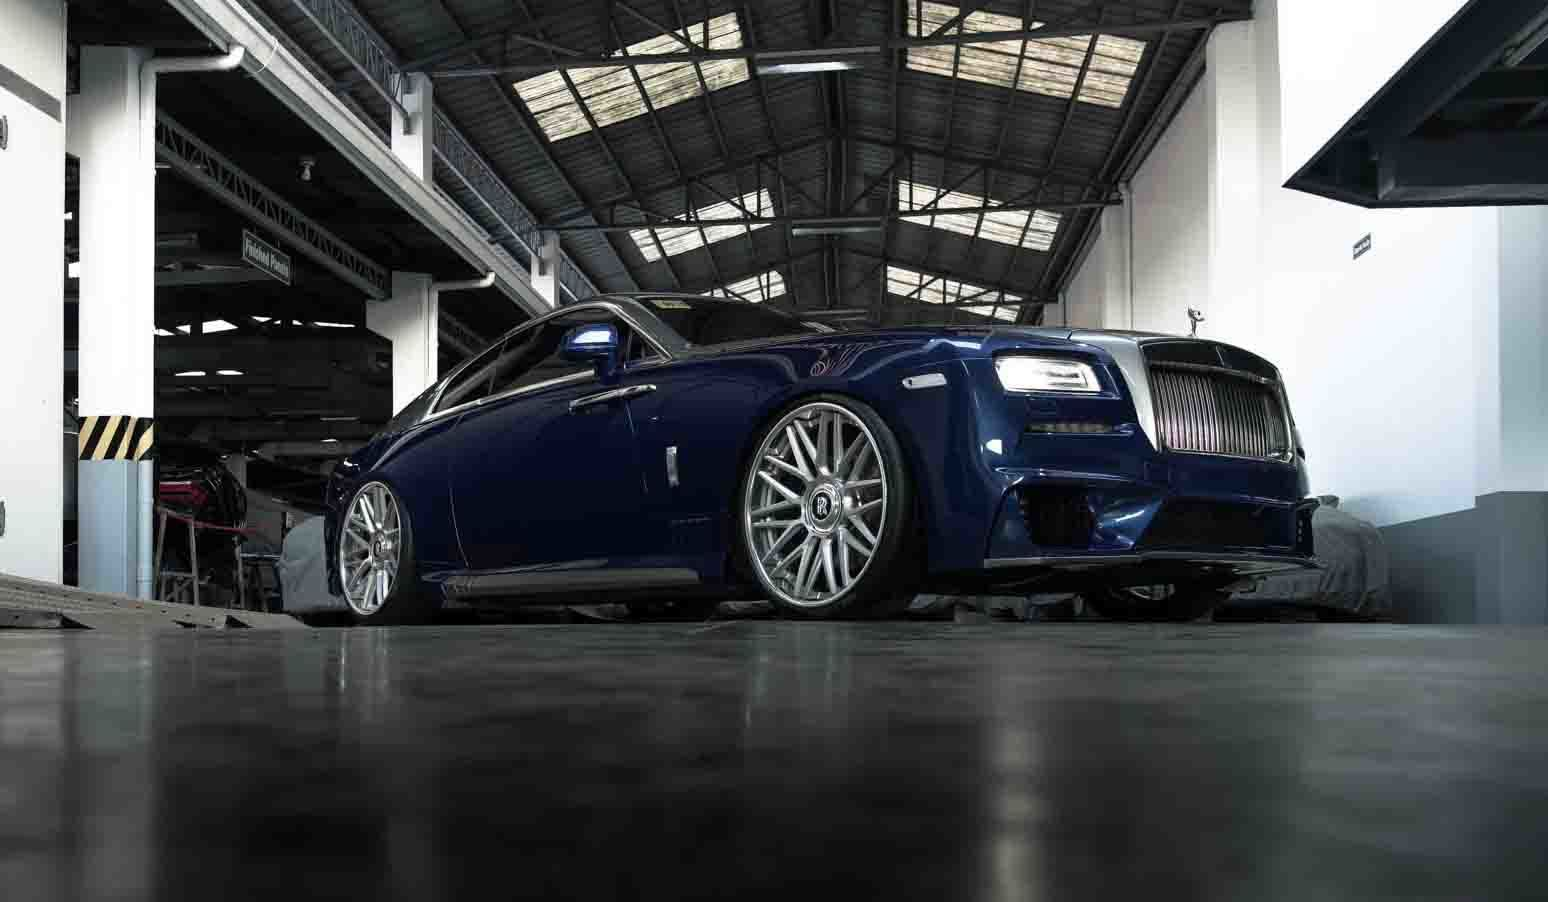 images-products-1-2349-232974637-brixton-forged-rolls-royce-wraith-brixton-forged-cm10-24-inch-brushed-silver-10-1800x1194.jpg